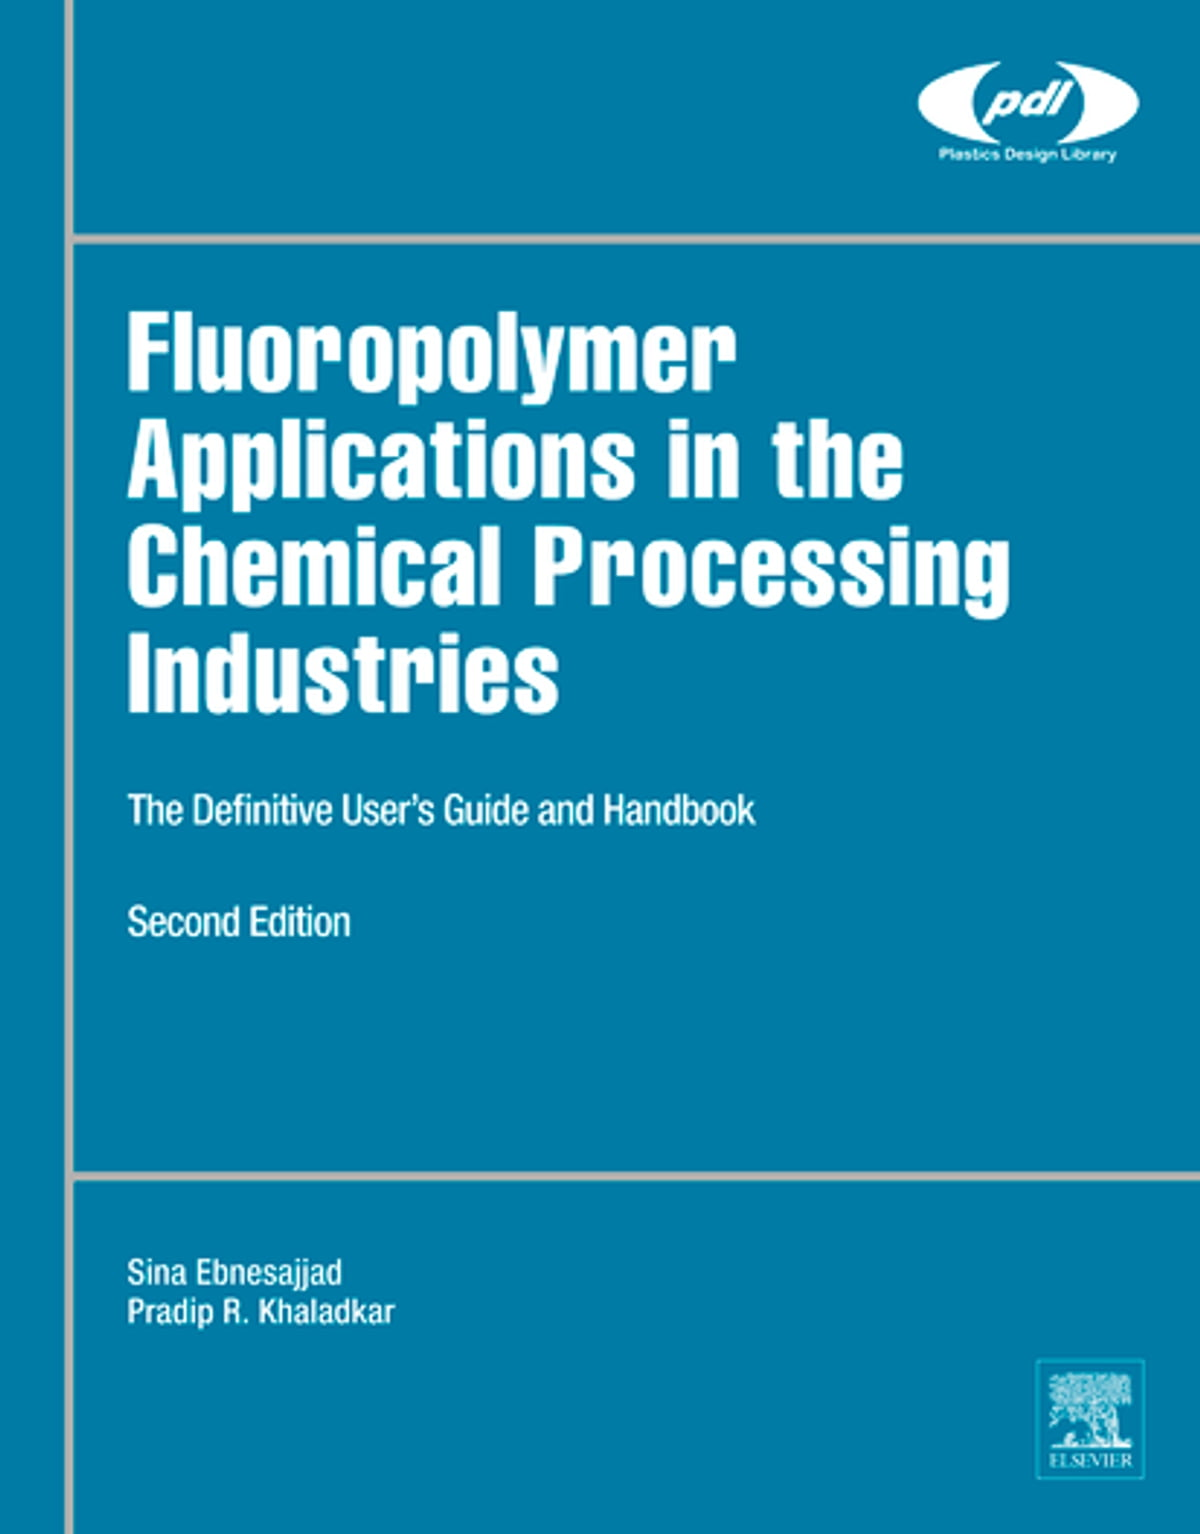 Fluoropolymer Applications in the Chemical Processing Industries eBook by  Pradip R. Khaladkar - 9780323461153 | Rakuten Kobo